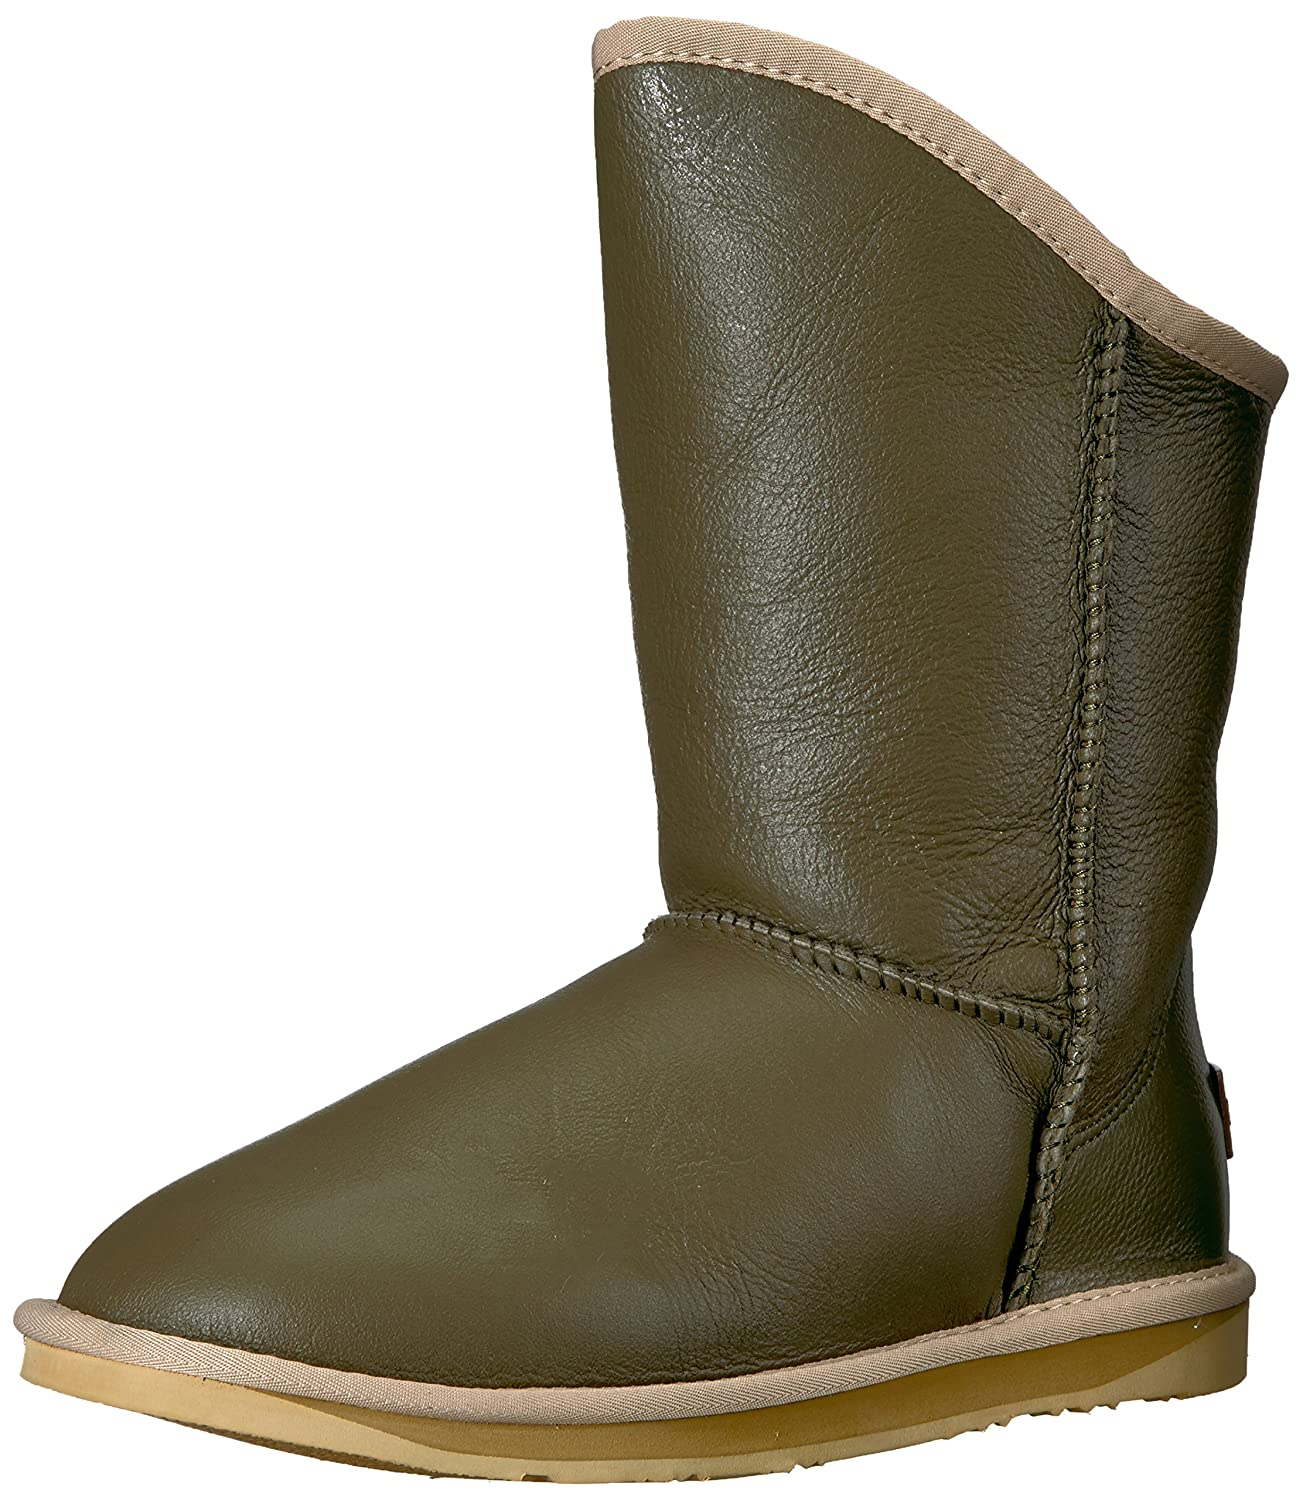 Luxe Co............................. Womens Cosy Short Closed Toe Mid-Calf Fashion Boots B075FY2KWT 8 B(M) US|Army